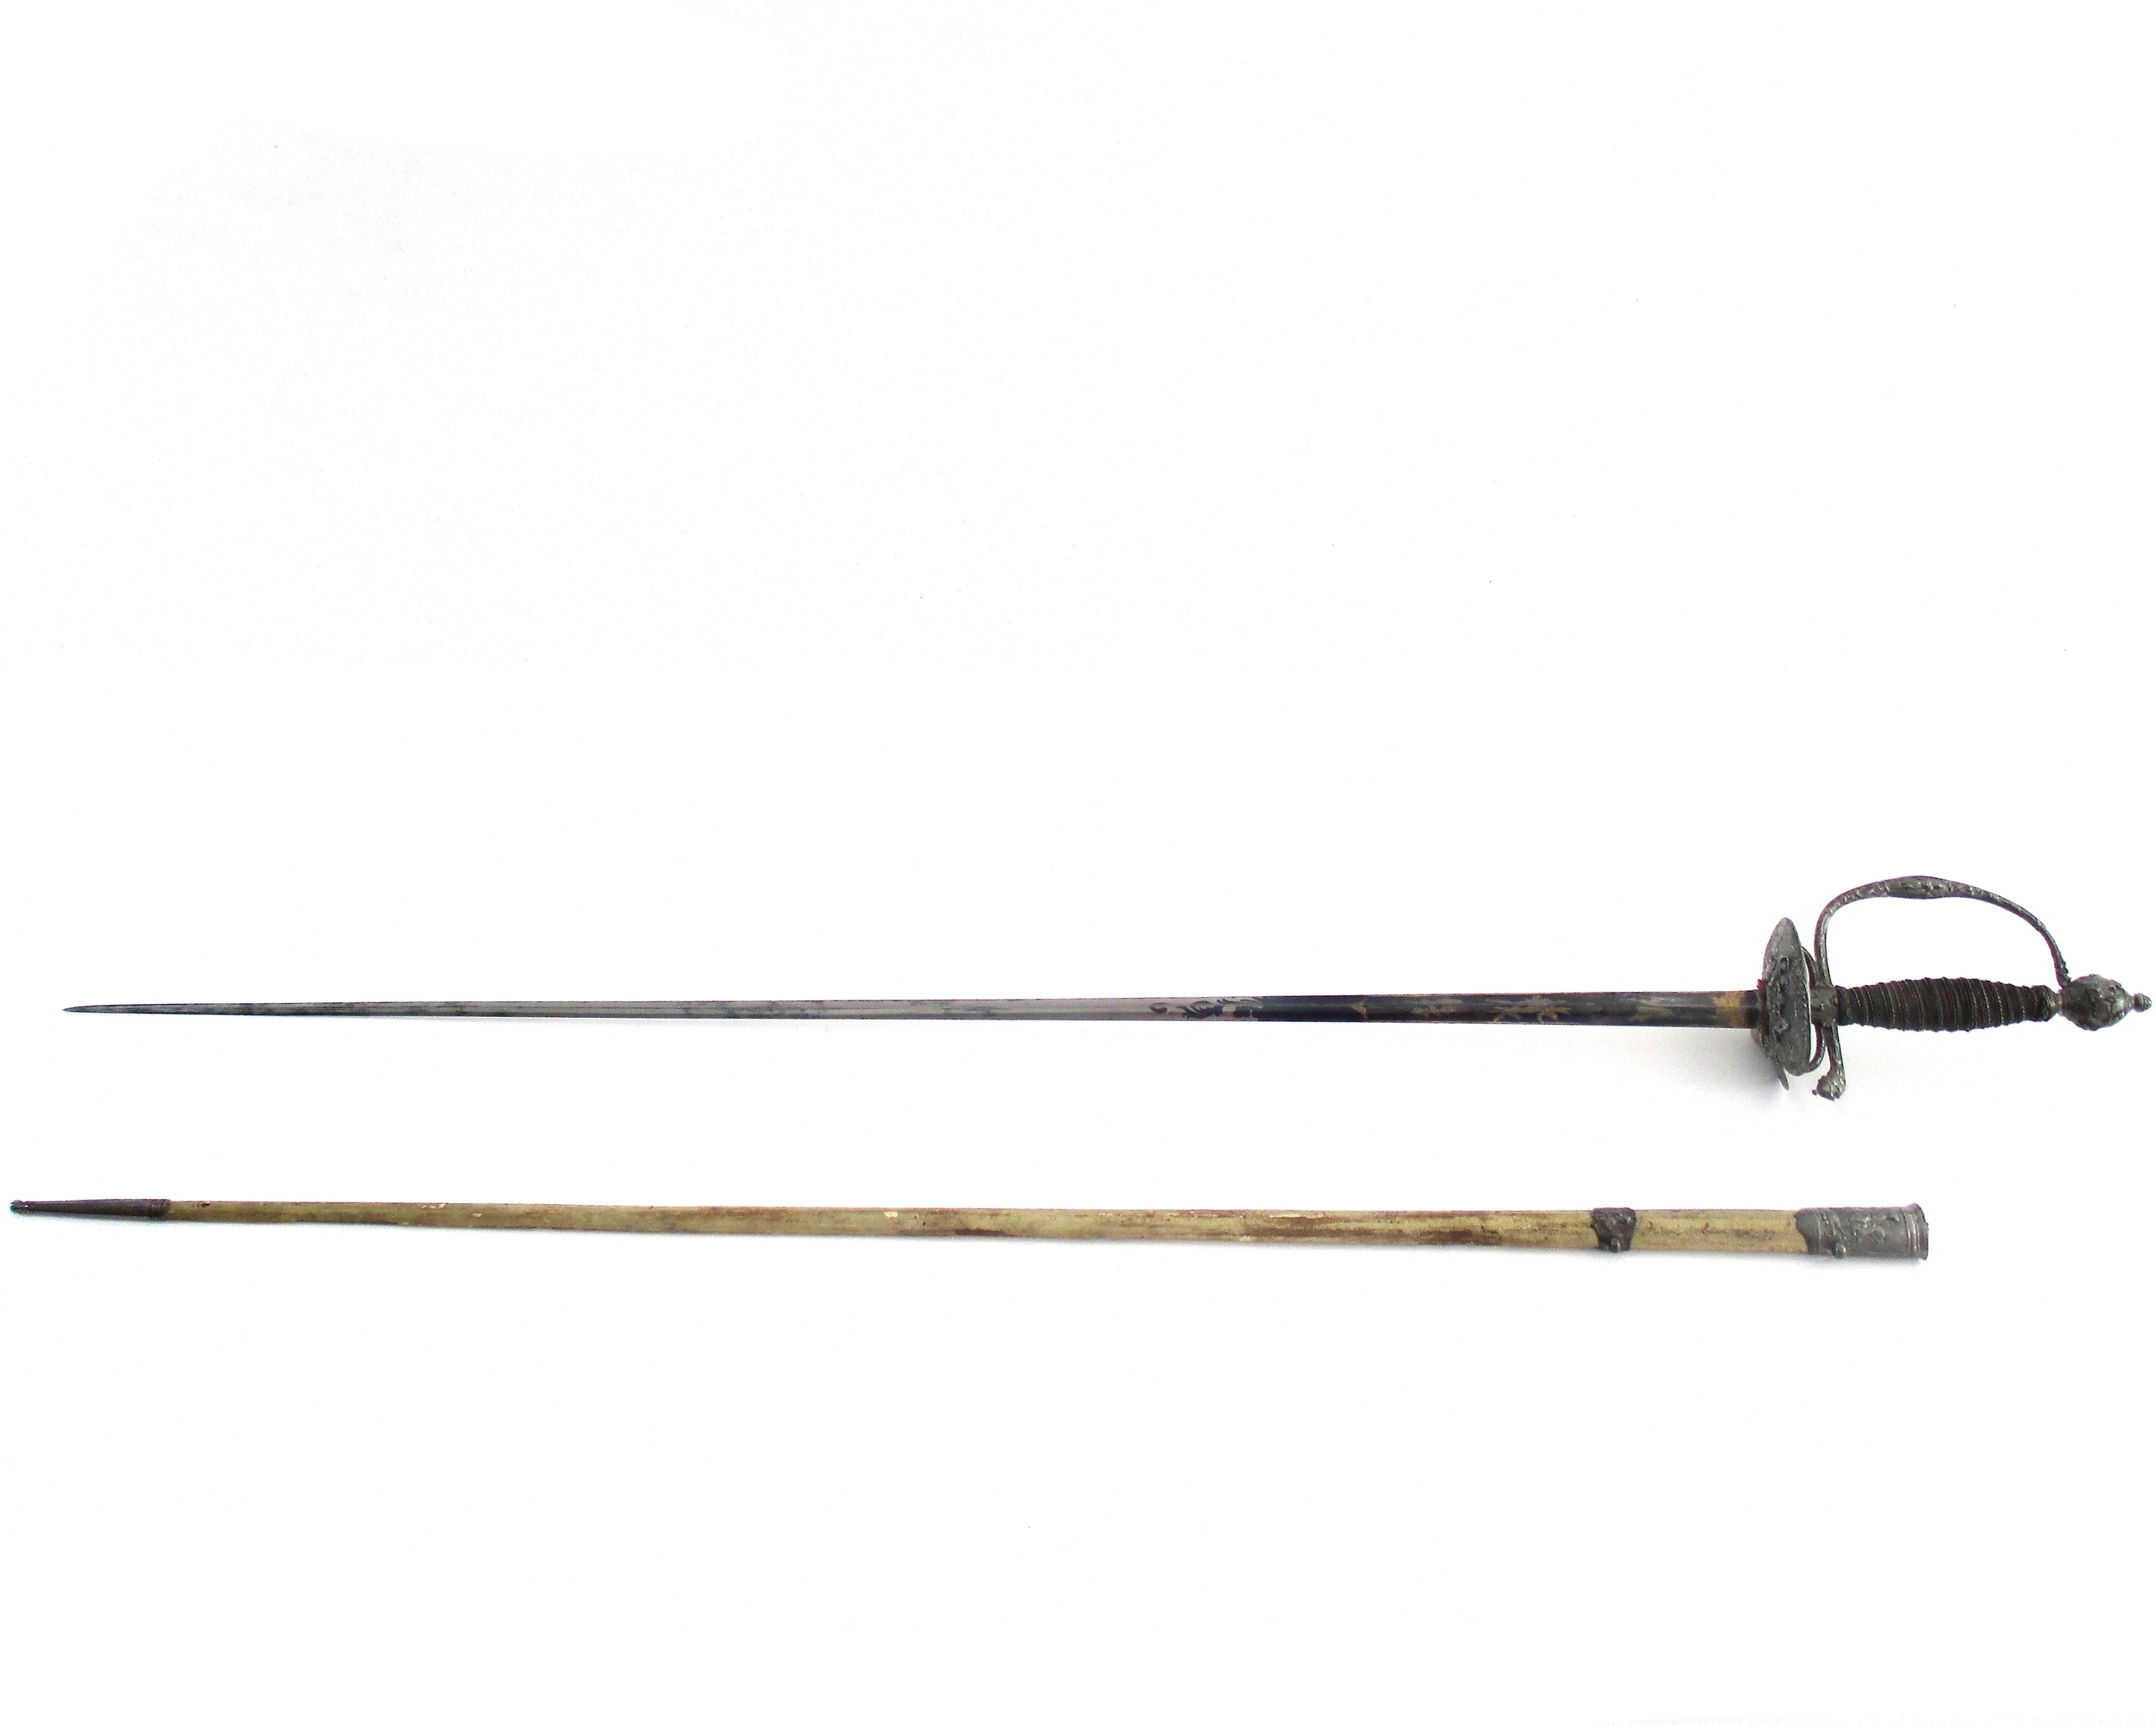 french-small-sword-1760-steel-chiseled-gary-friedland-arms-armor.jpg